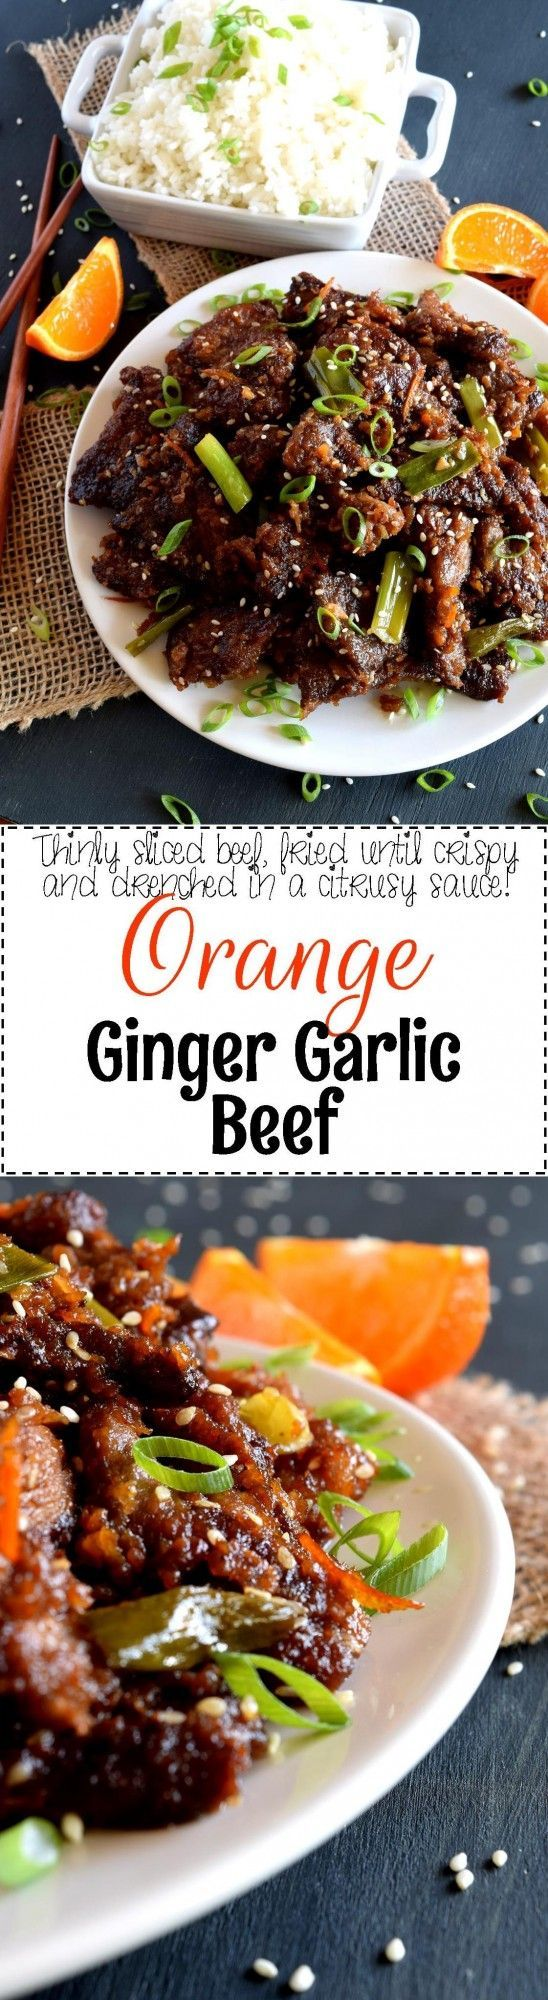 Orange Ginger Garlic Beef - Thinly sliced beef which has been lightly seared and tossed in a thick orange-based sauce.  Orange Ginger Garlic Beef is a quick take-out inspired dish which packs a punch of flavour while using just a few fresh ingredients.   #beef #orange #ginger #recipe